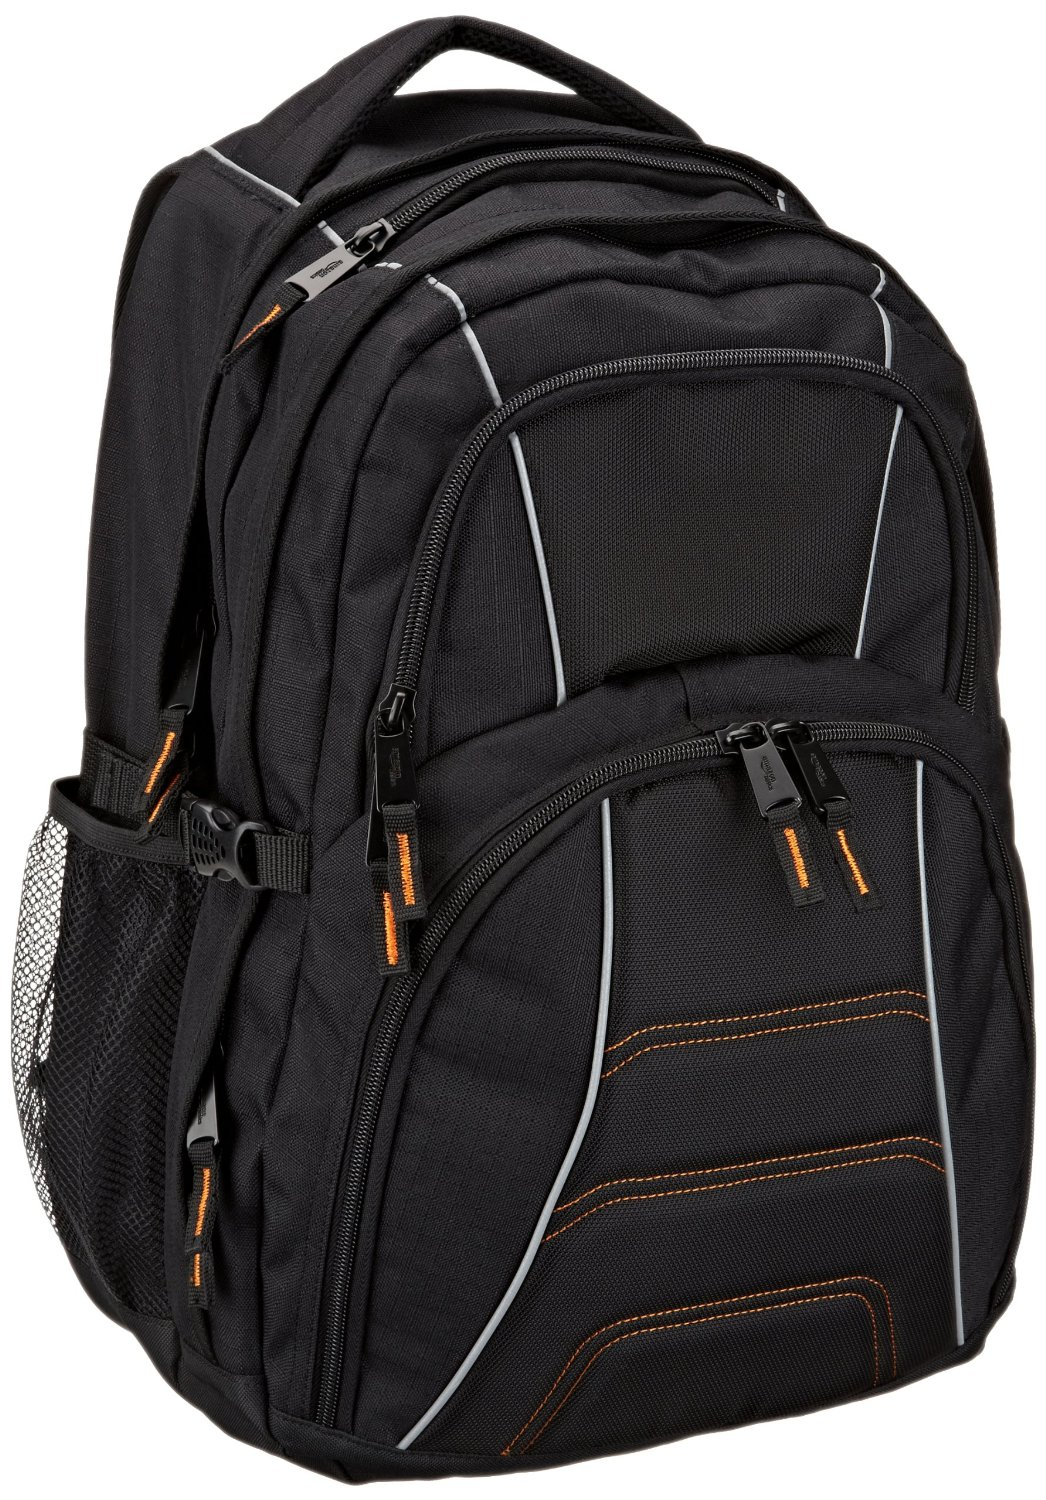 3 best backpacks